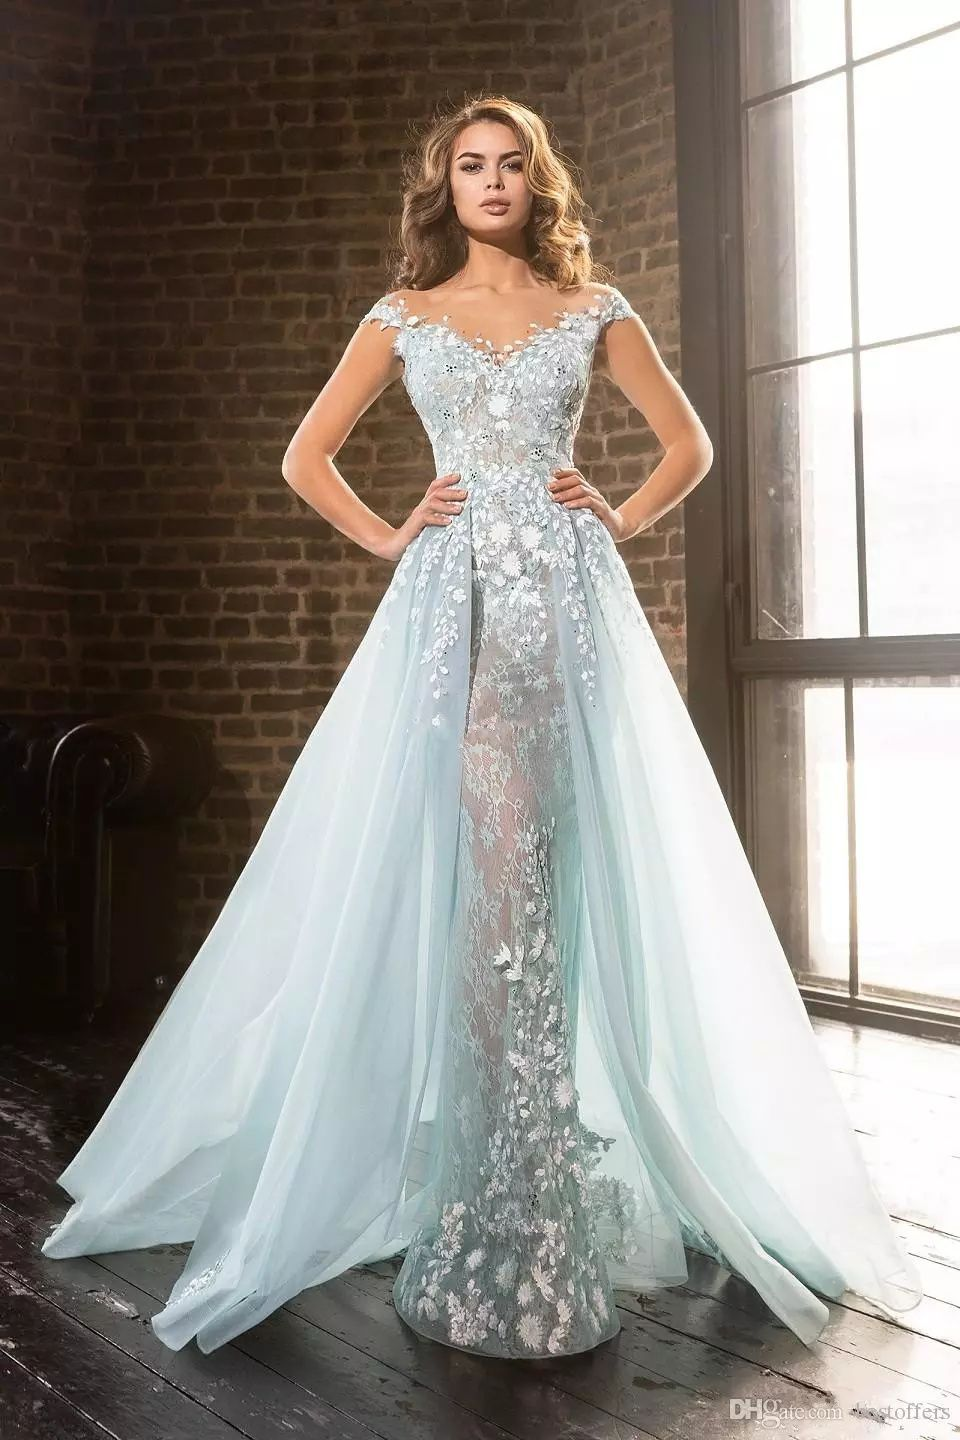 ccc1d5b8d18 Delicate Ice Blue Mermaid Prom Dresses with Detachable Train 2017 V Neck  Vintage Lace with Beads Overskirt Long Formal